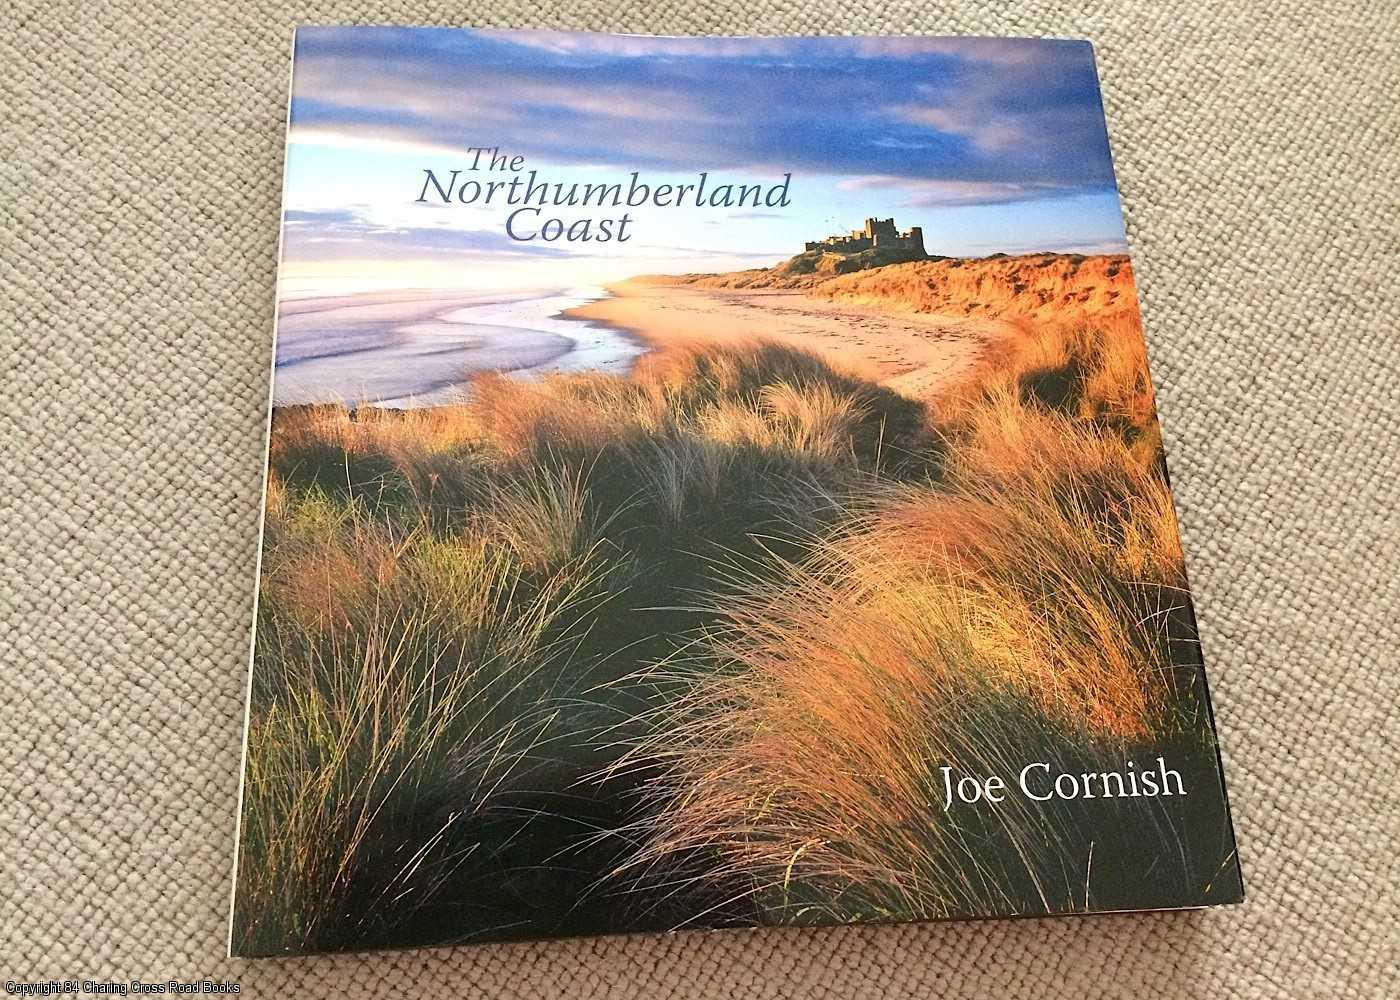 CORNISH, JOE - The Northumberland Coast